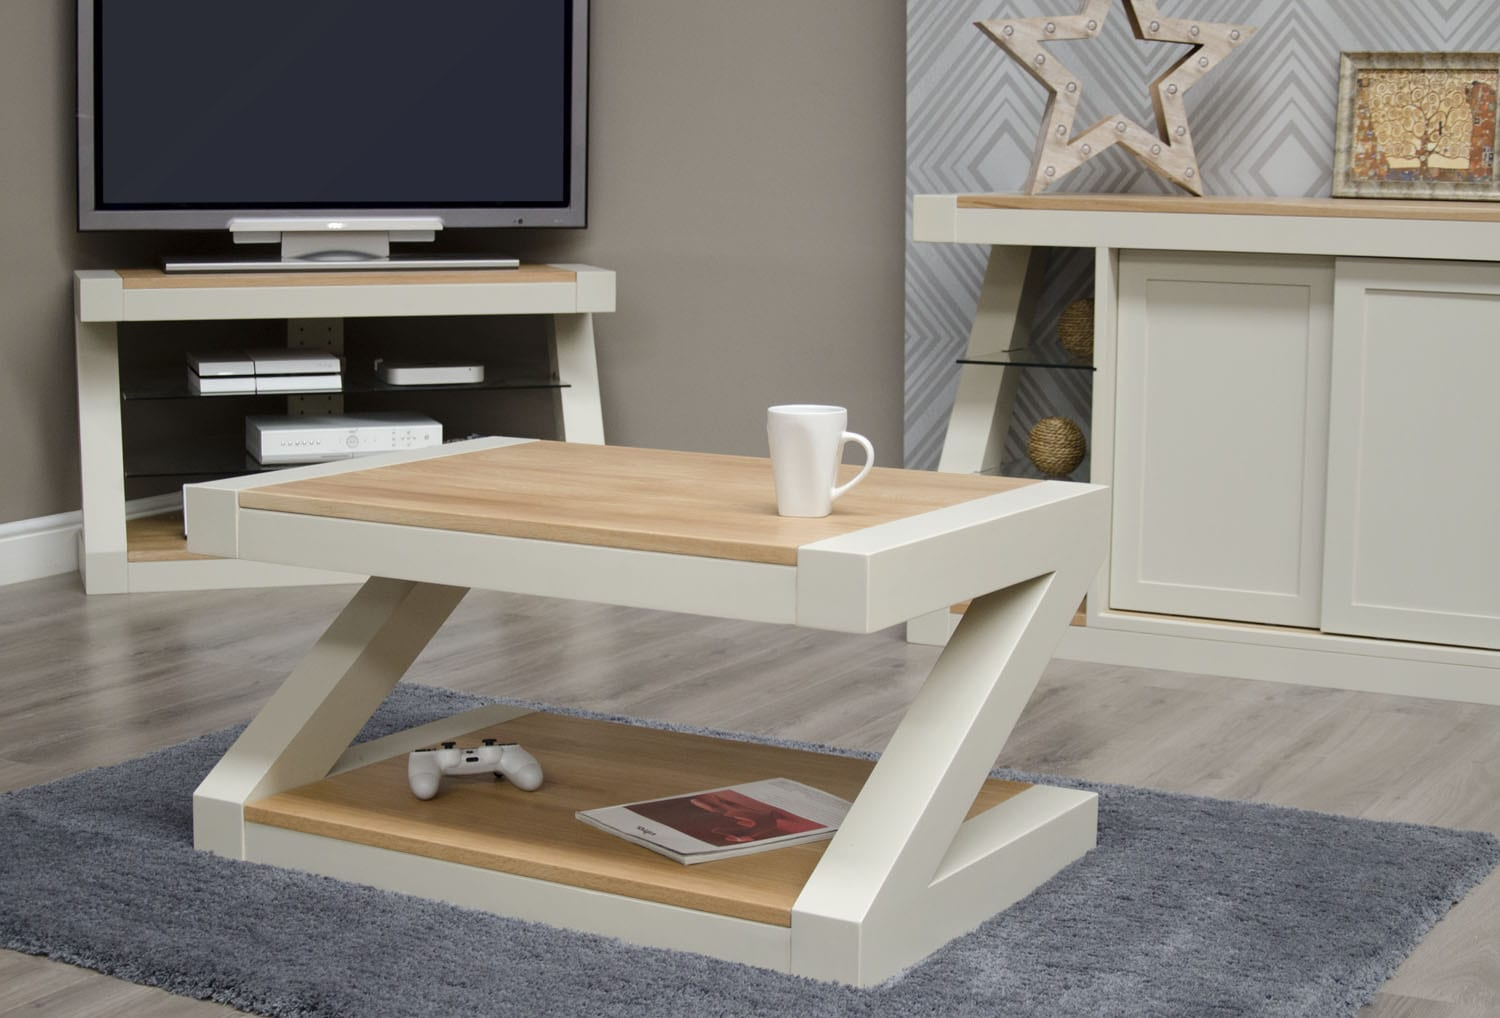 PZ3X2CT Z Designer Painted Coffee Table Natural top and shelf